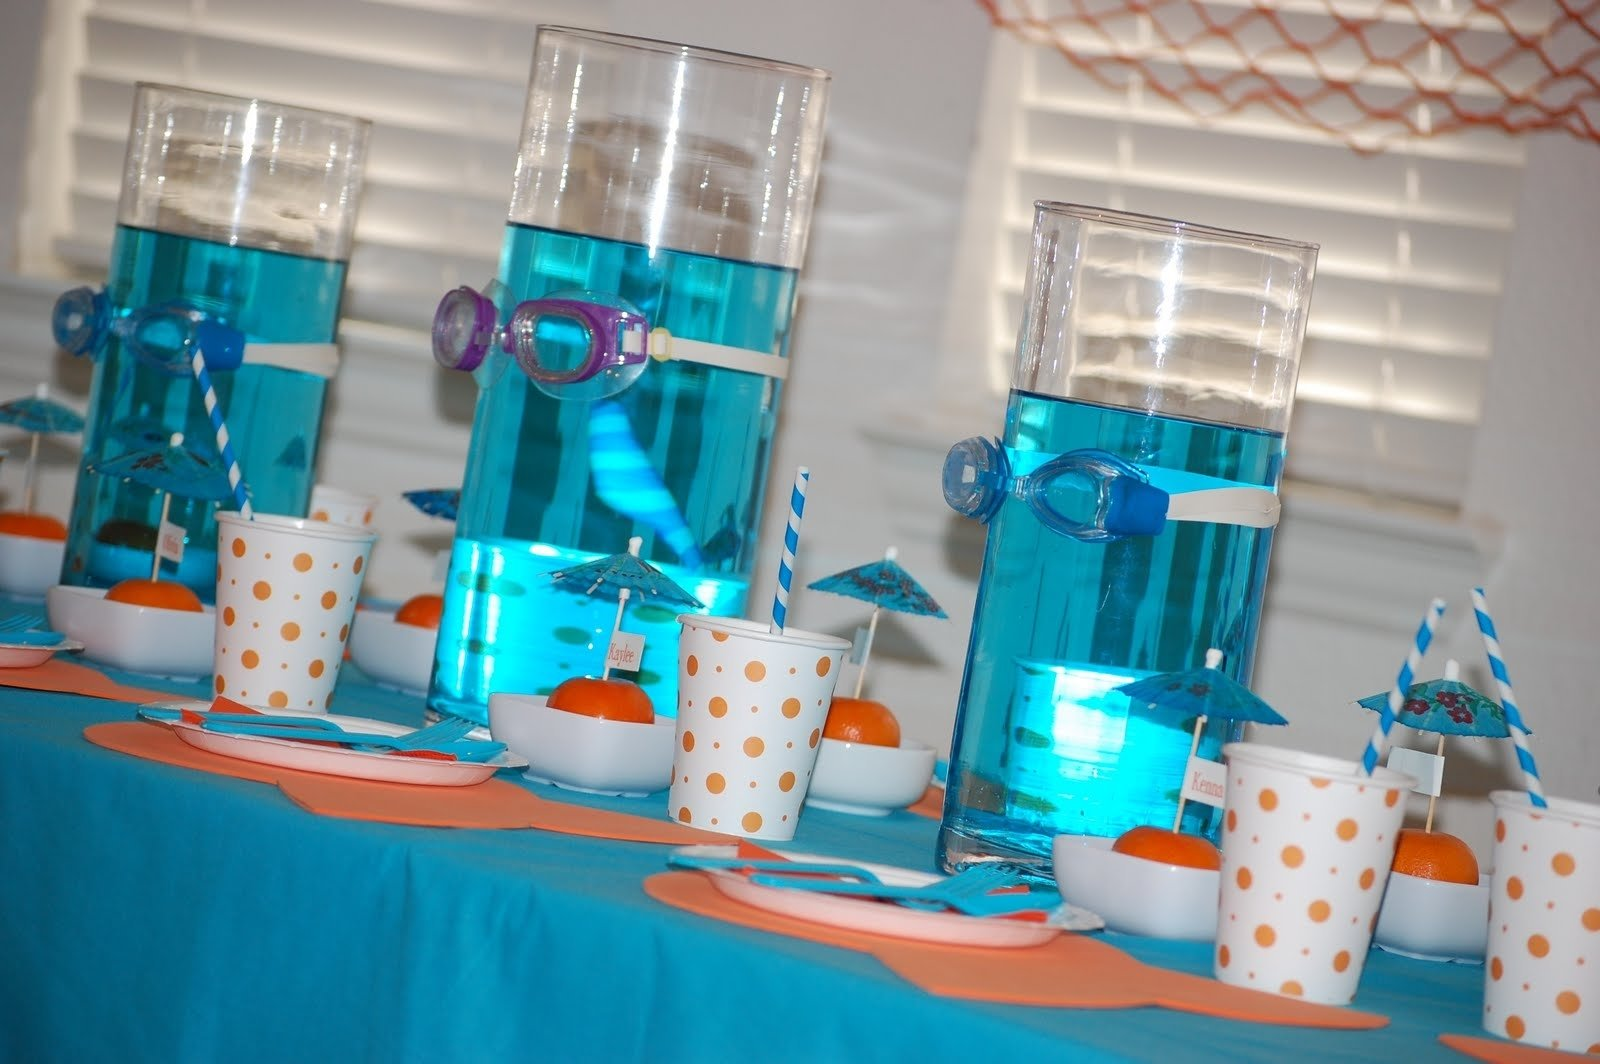 10 Fabulous Under The Sea Centerpiece Ideas goggle centerpieces under the sea pinterest birthdays 2020